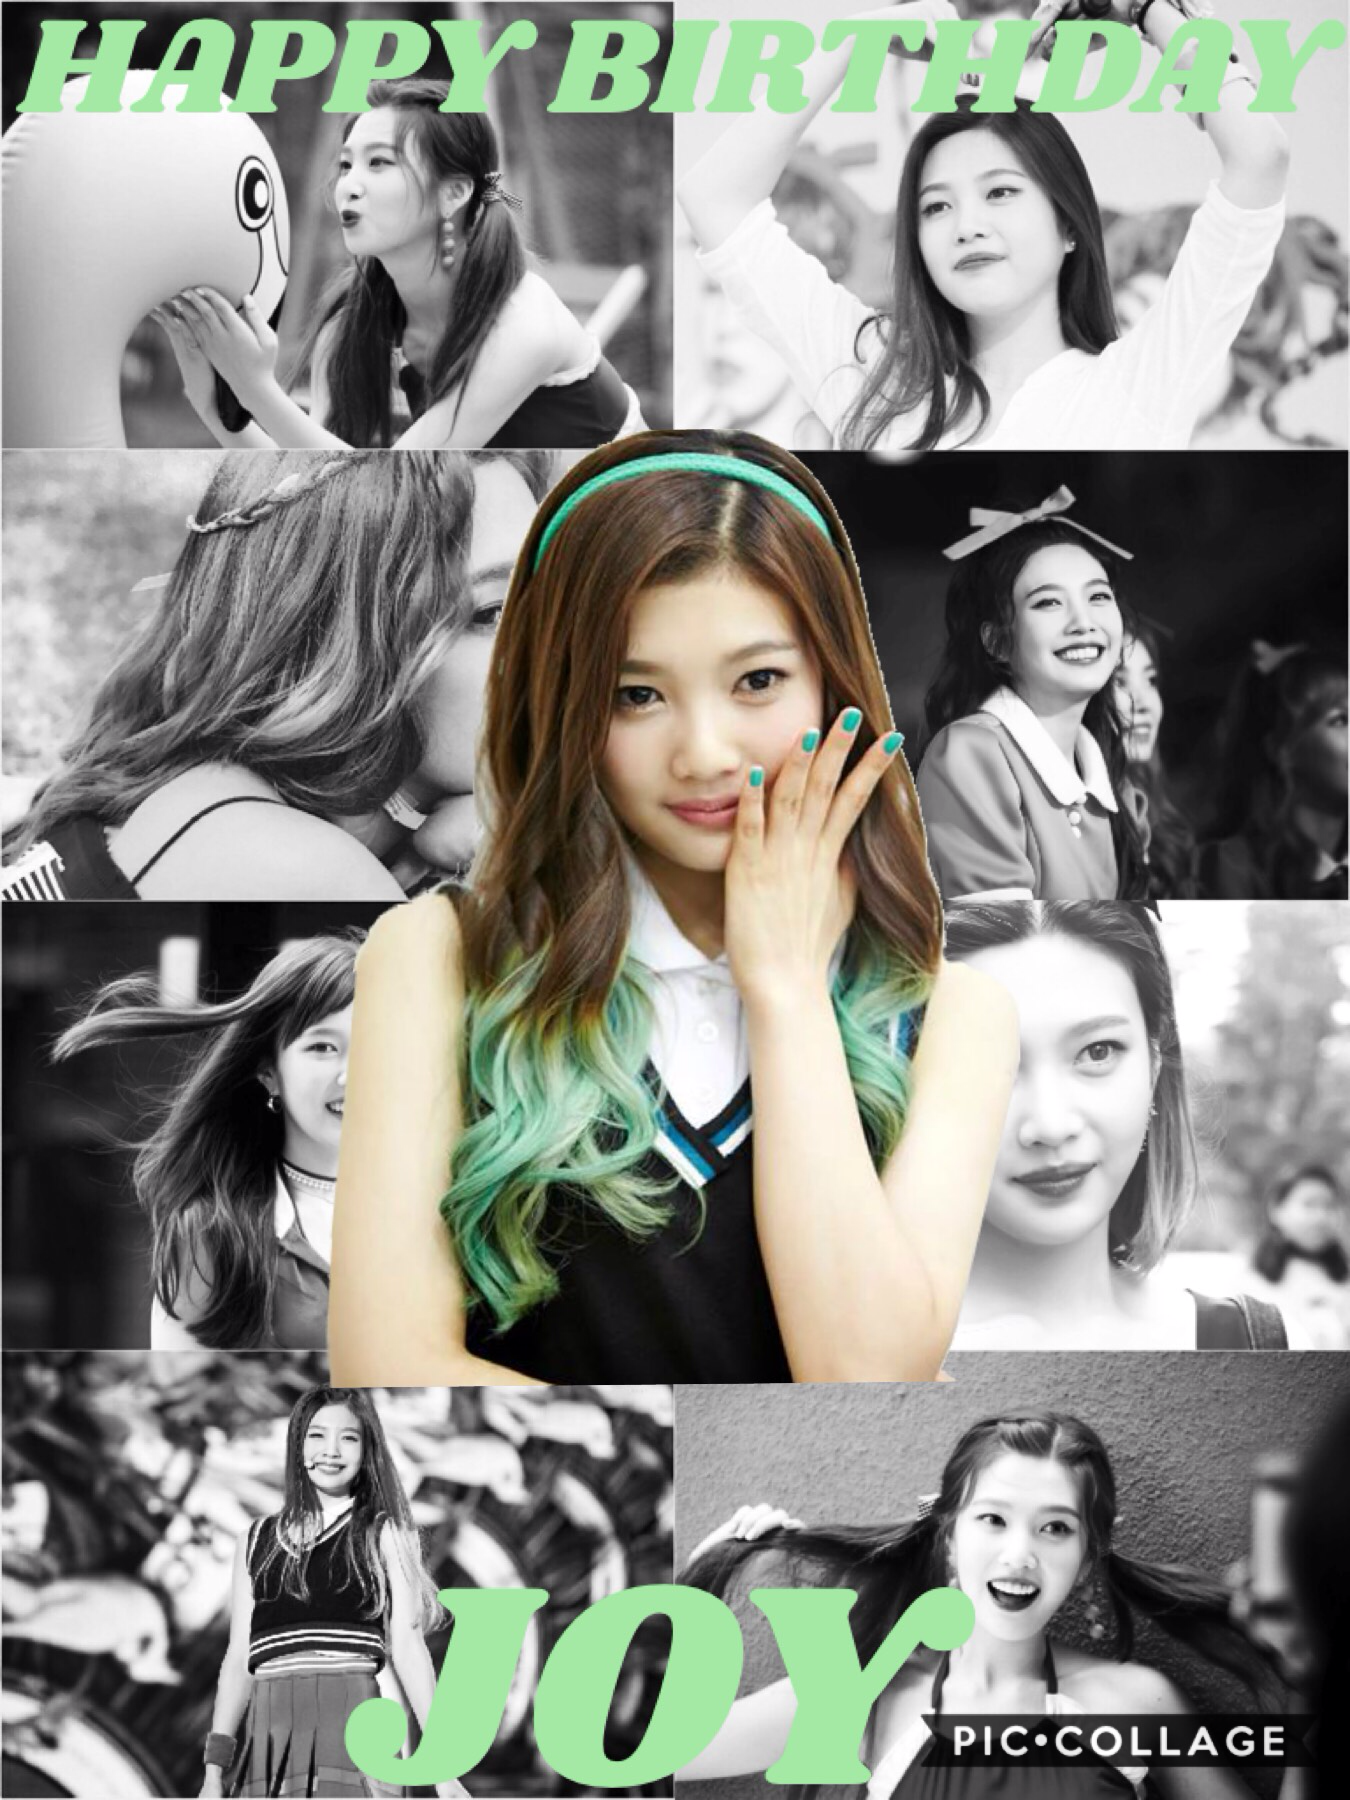 🎉HAPPY BIRTHDAY JOY🎉 Joy is my bias from Red Velvet😁